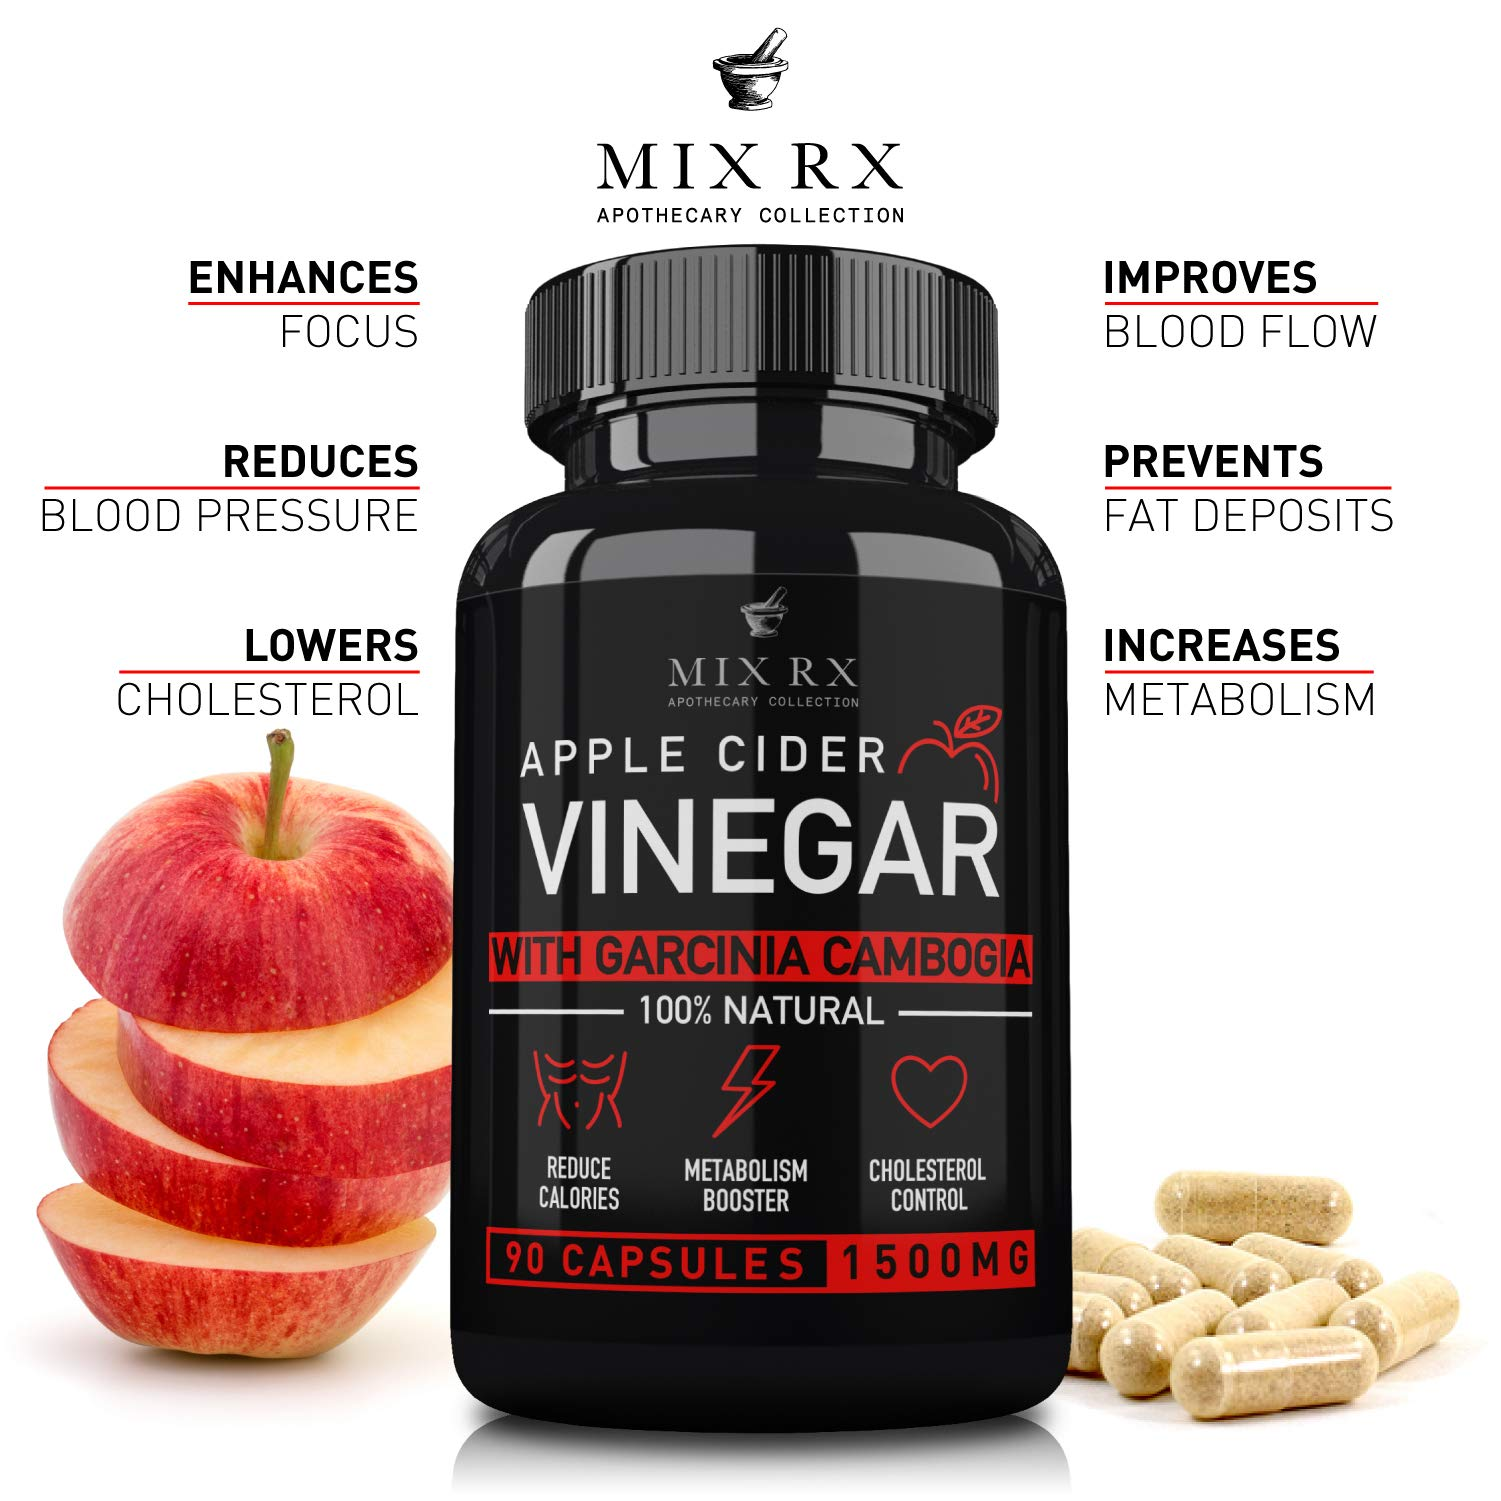 (2 Pack | 180 Pills) Apple Cider Vinegar Capsules w/ Garcinia Cambogia (1500mg) ACV Tablets - Fiber Supplement - Detox Cleanse Relief - Heartburn, Digestion, Organic Weight Management - 3 Month Supply